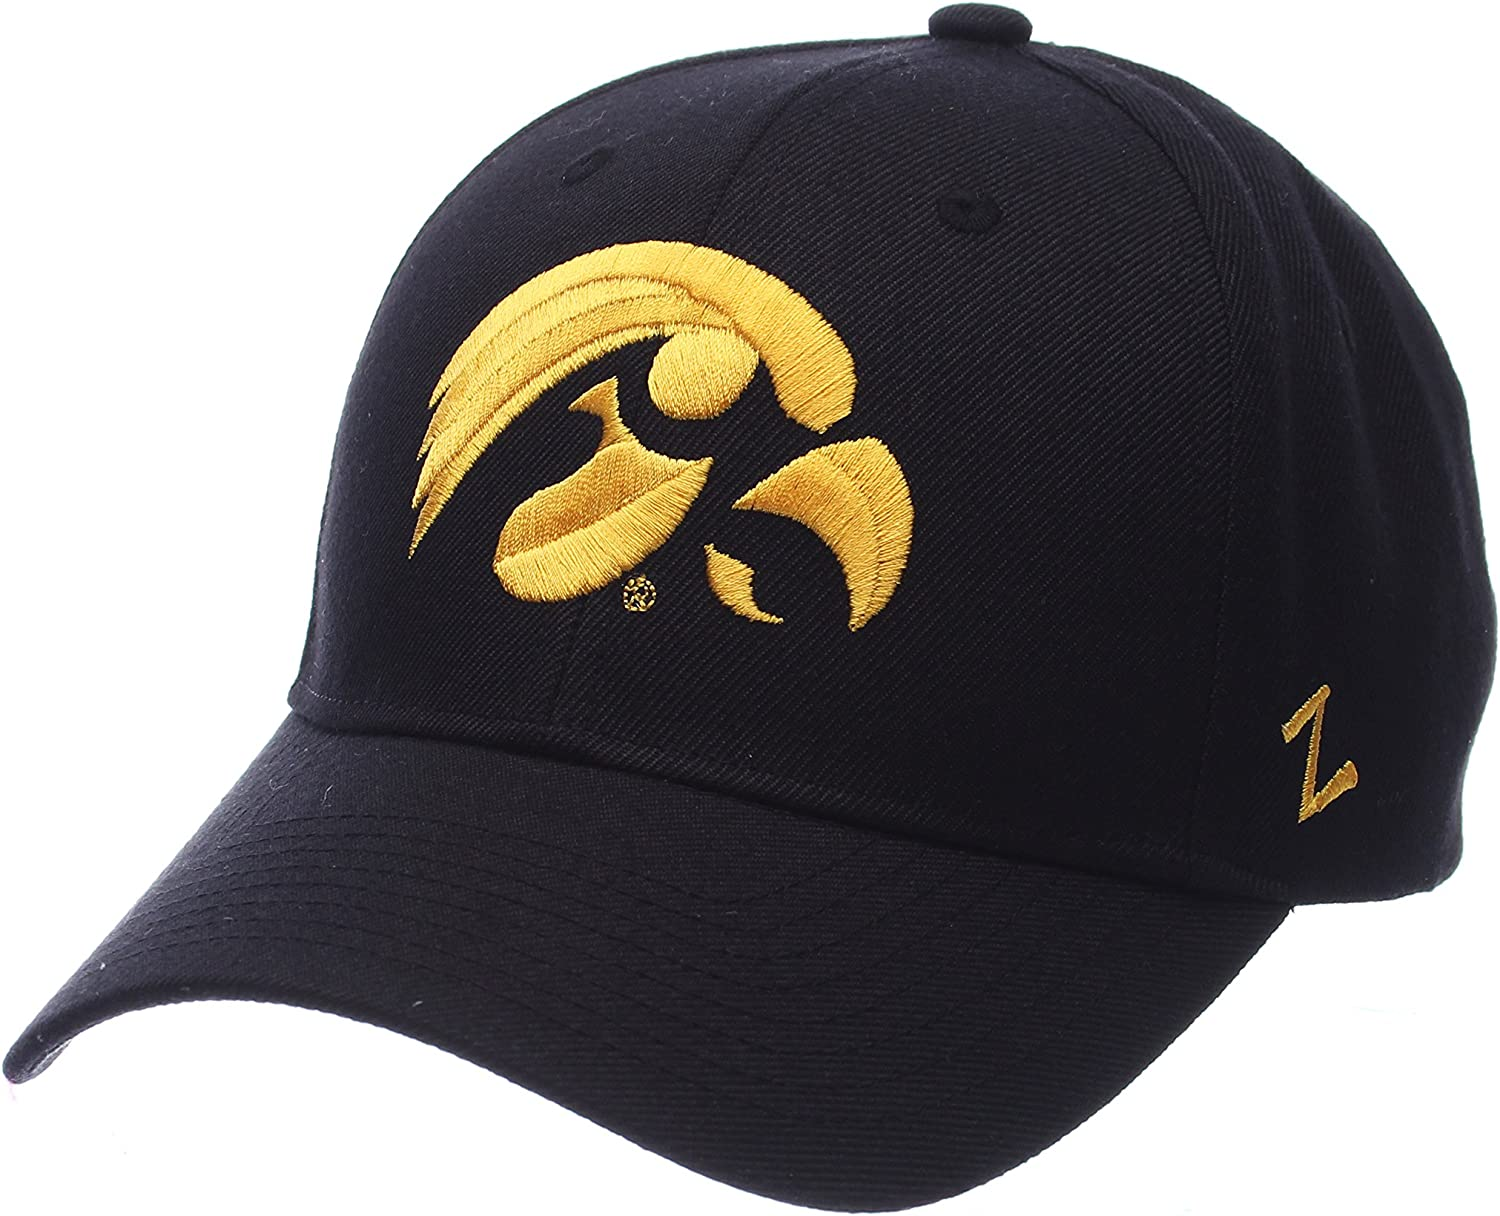 Zephyr Staple Relaxed Fit Dad CapNCAA One Size Adjustable Baseball Hat